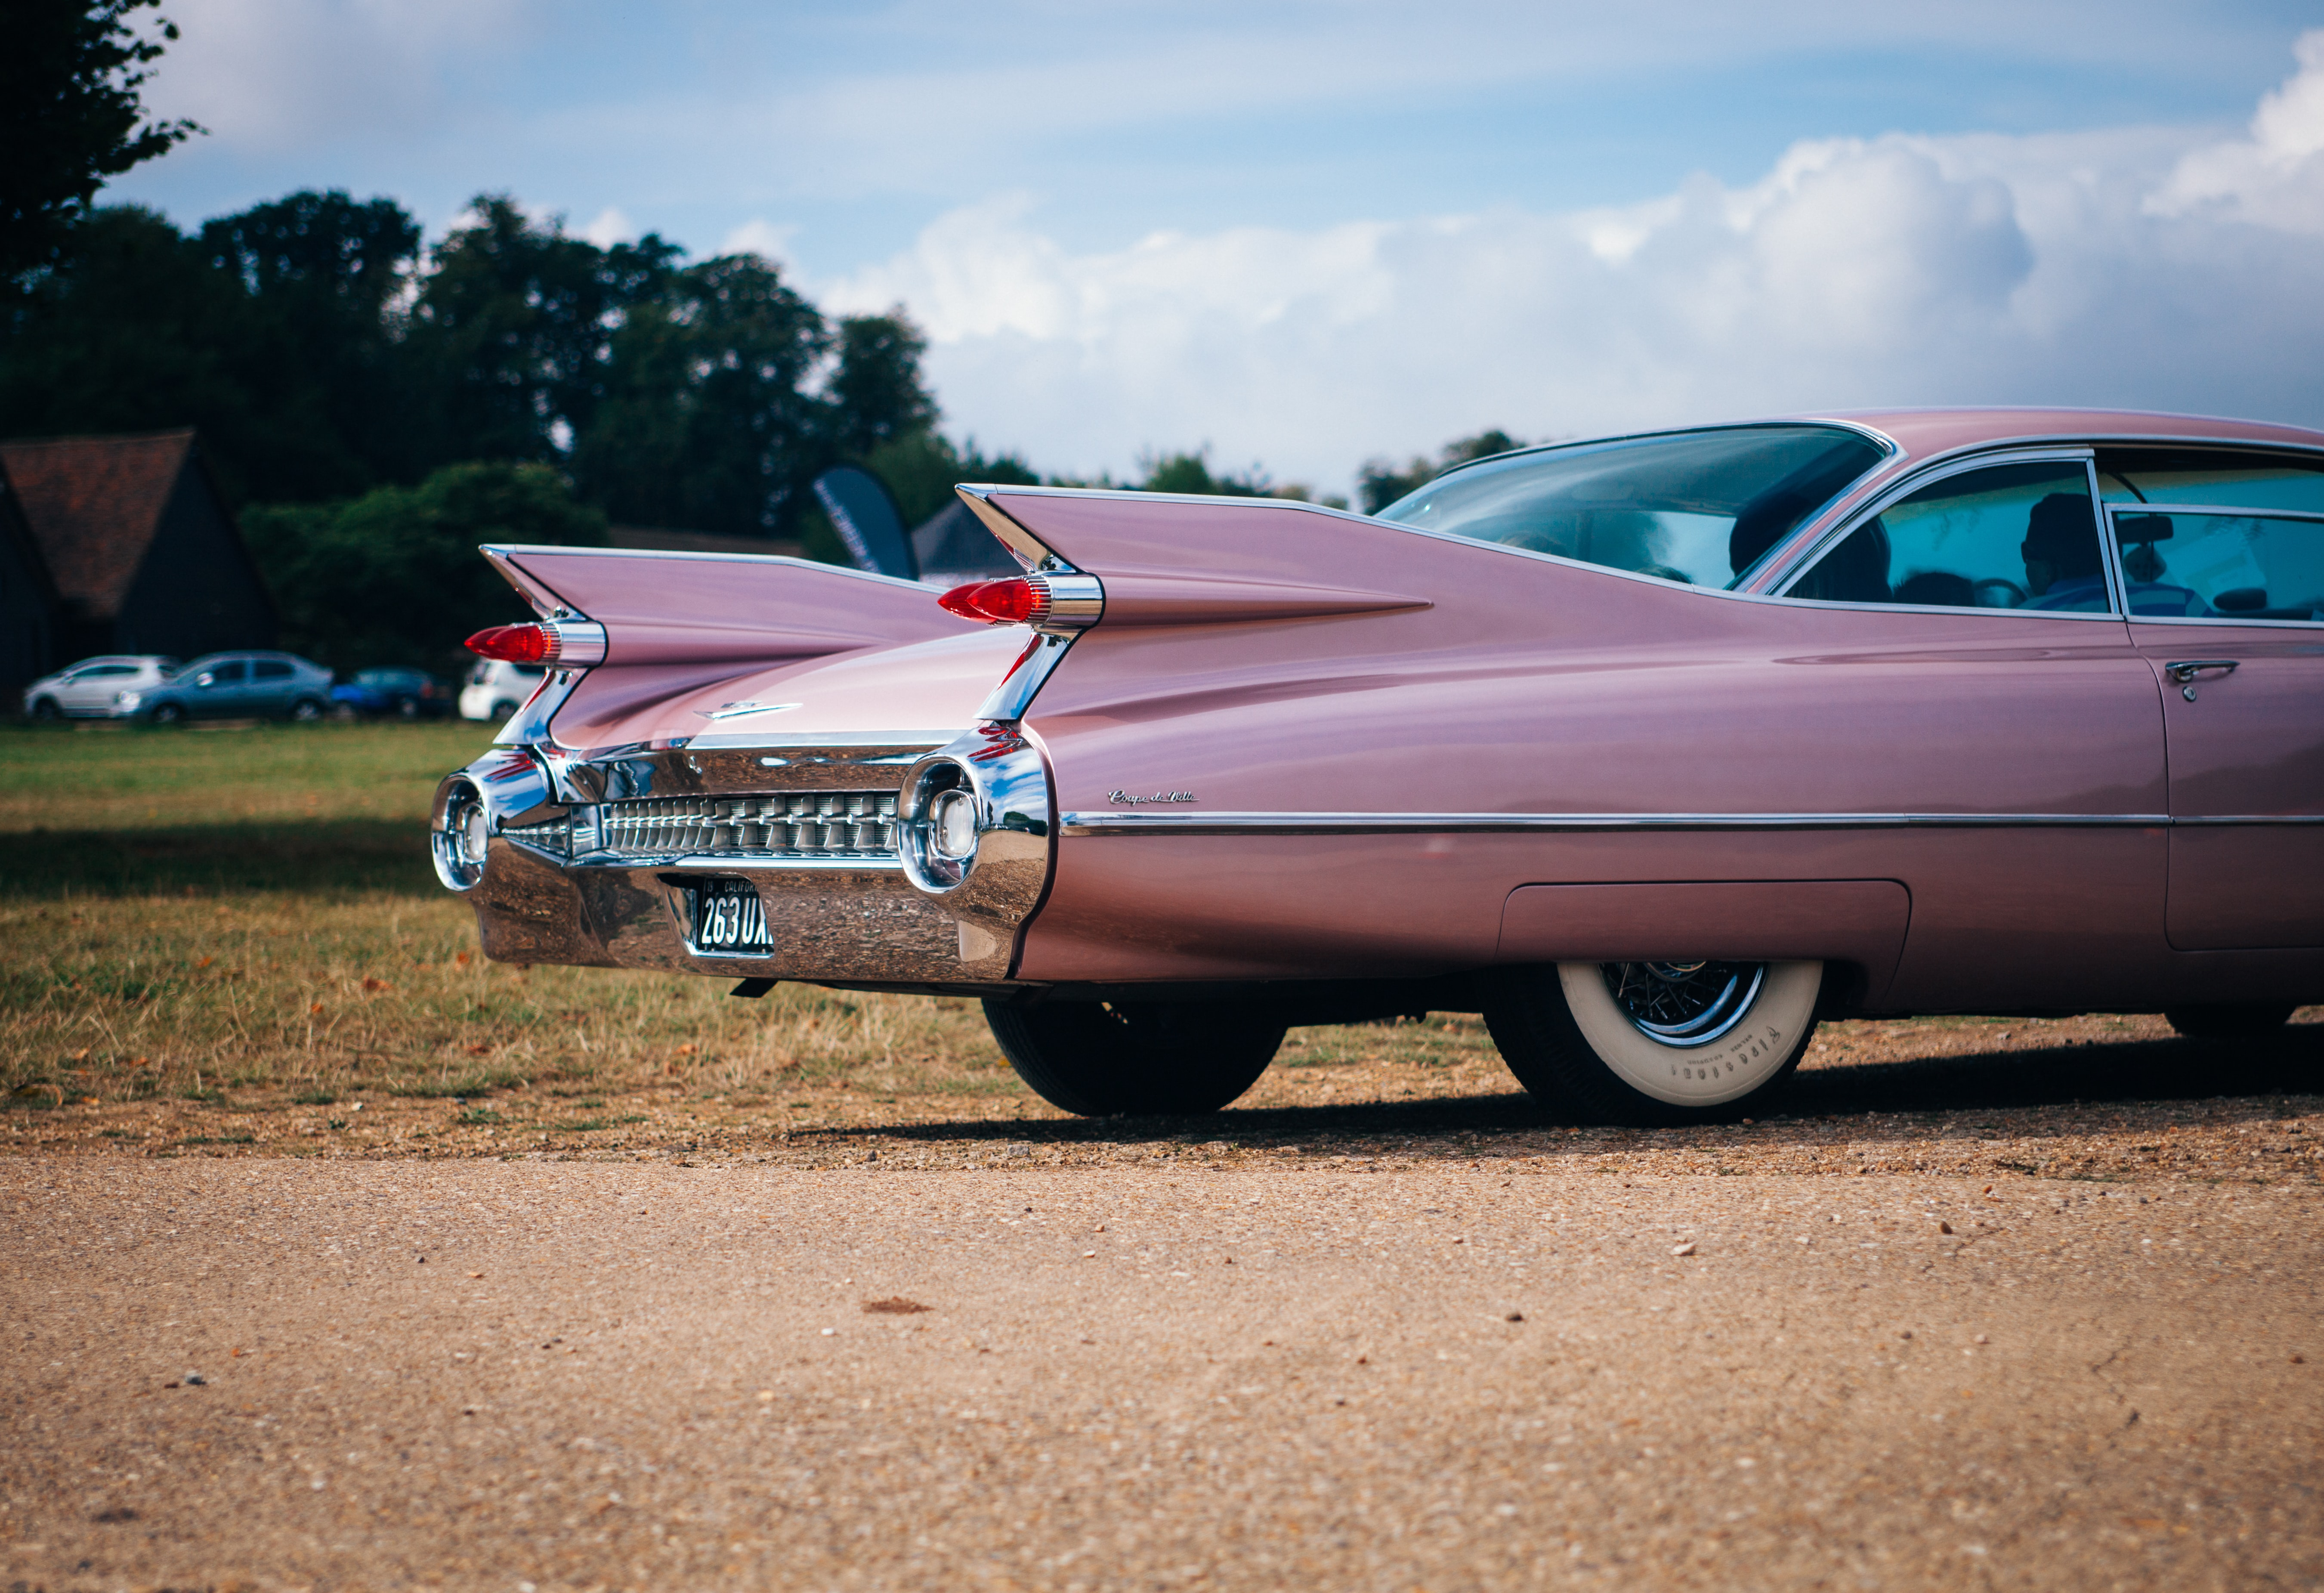 vintage pink muscle car parked near field of grass